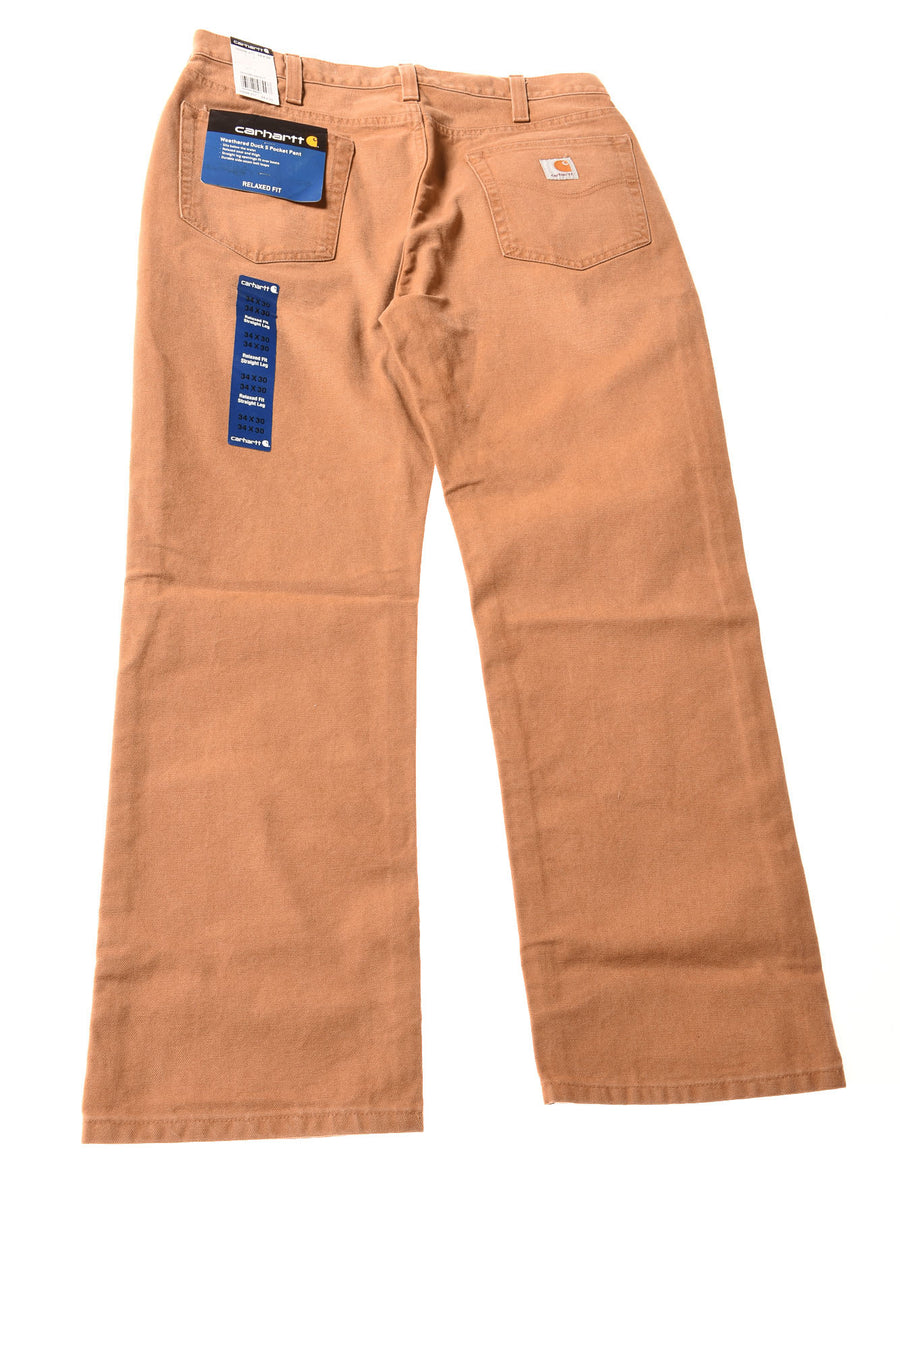 NEW Carhartt Men's Jeans 34x30 Brown